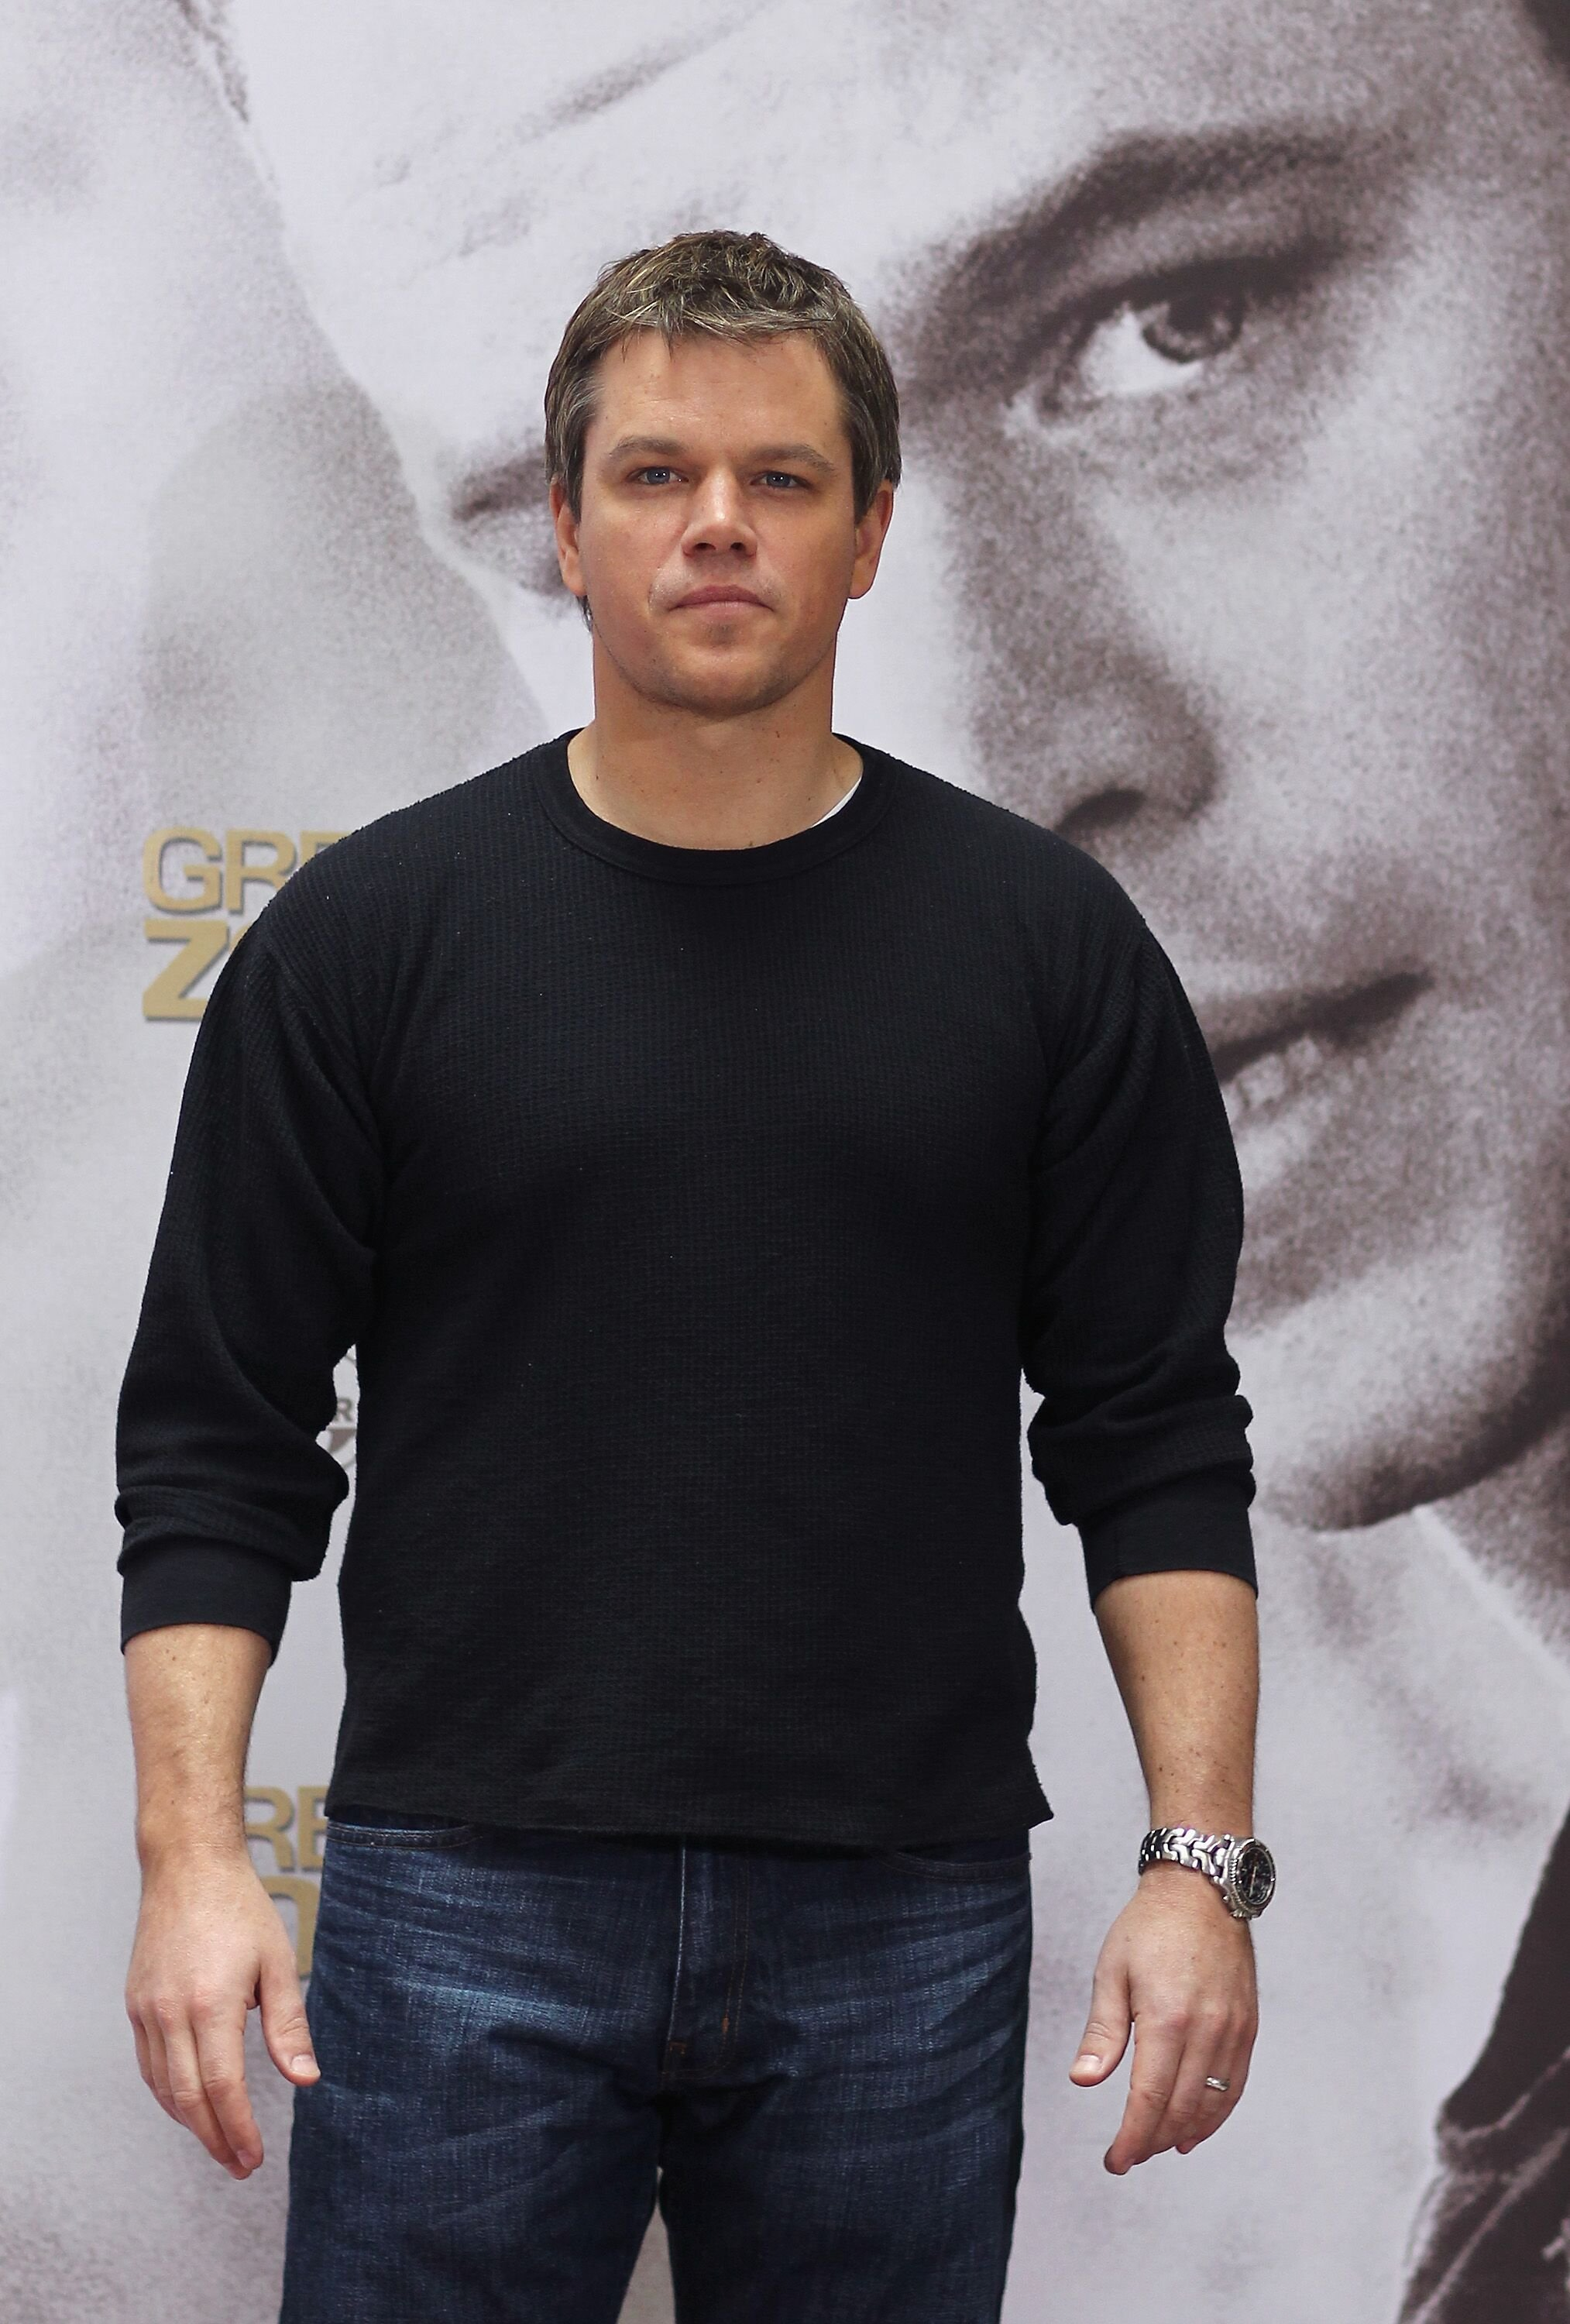 Matt Damon attends a photocall to promote the new movie. | Source: Getty Images